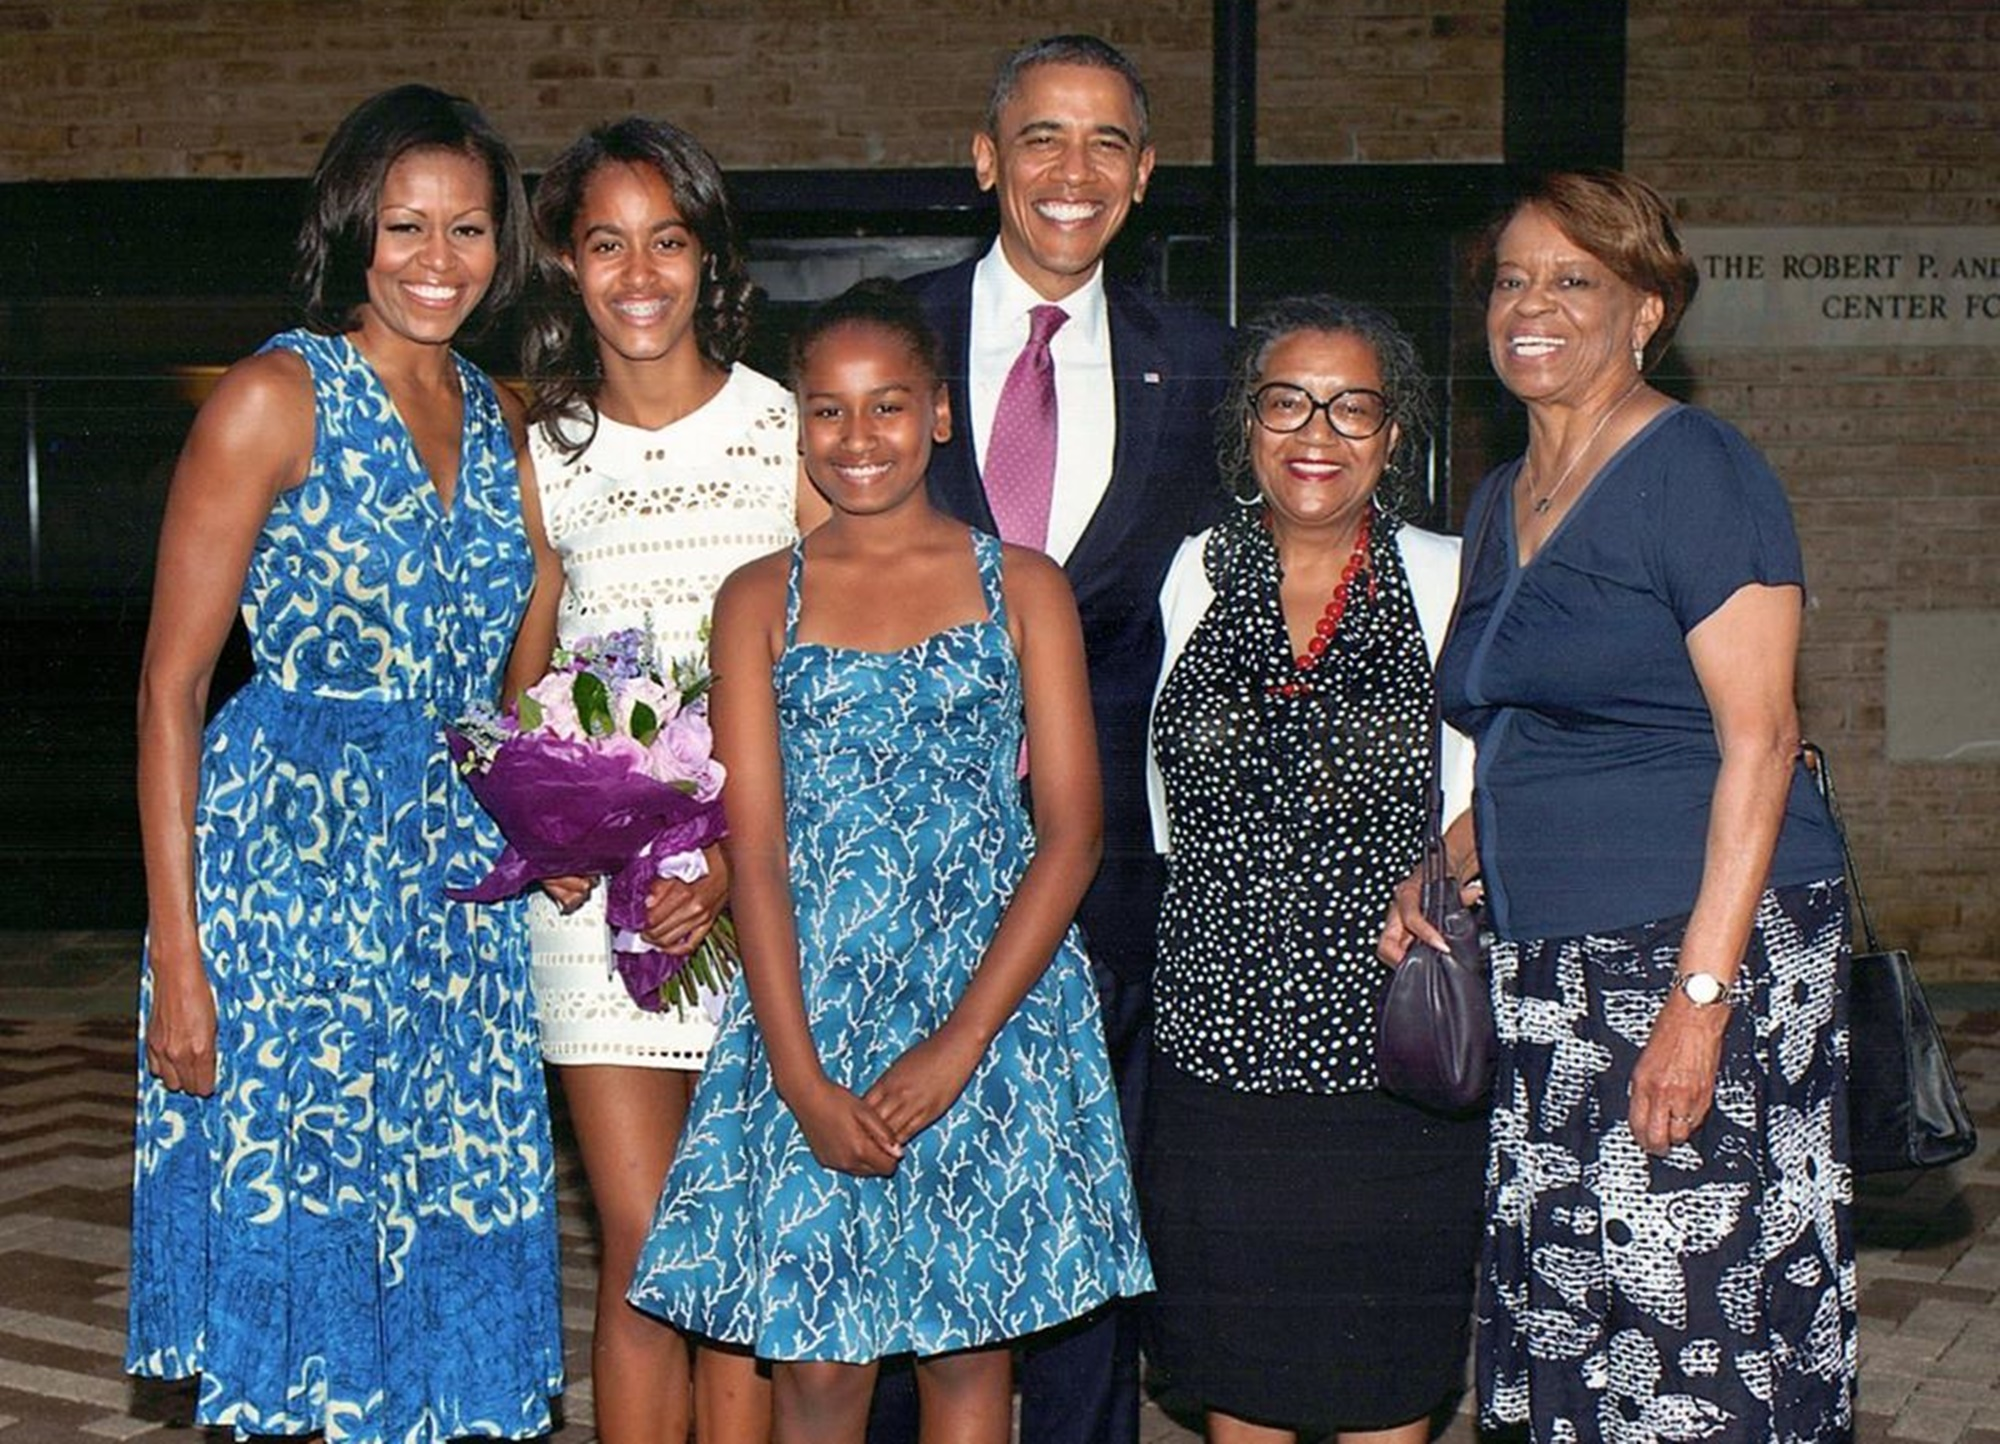 michelle-obama-shares-mothers-day-picture-with-daughters-malia-and-sasha